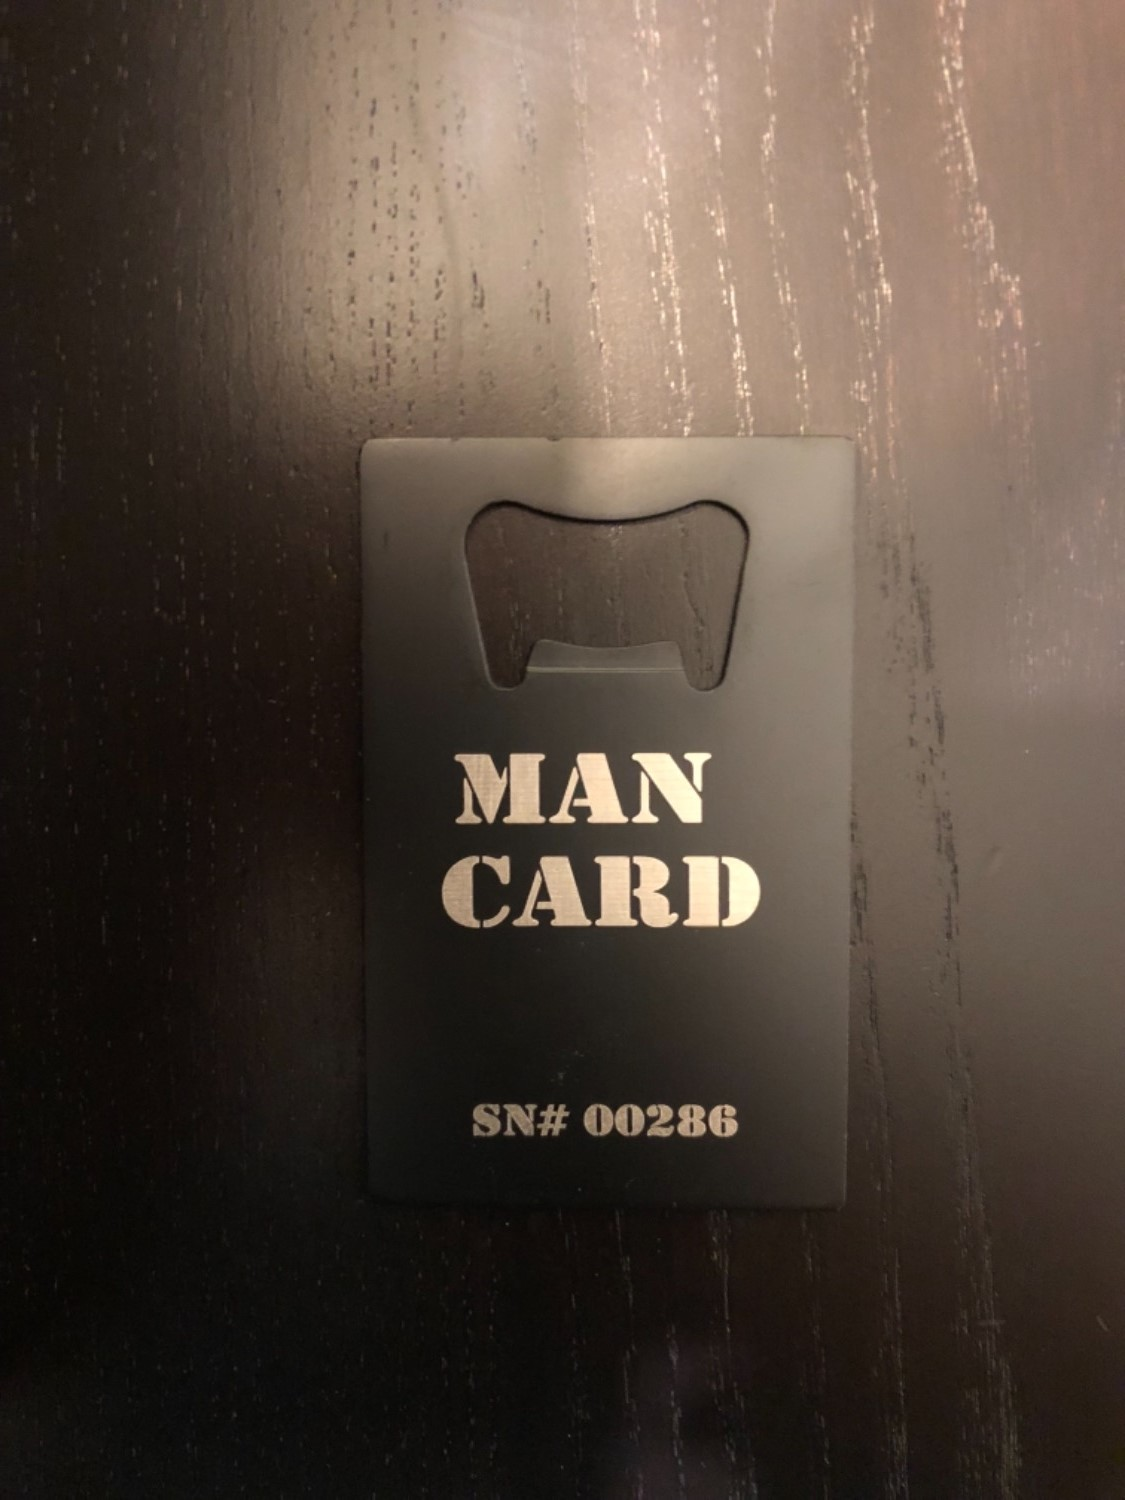 The Official MAN CARD (Beer Bottle Opener) » Manly Man Co®